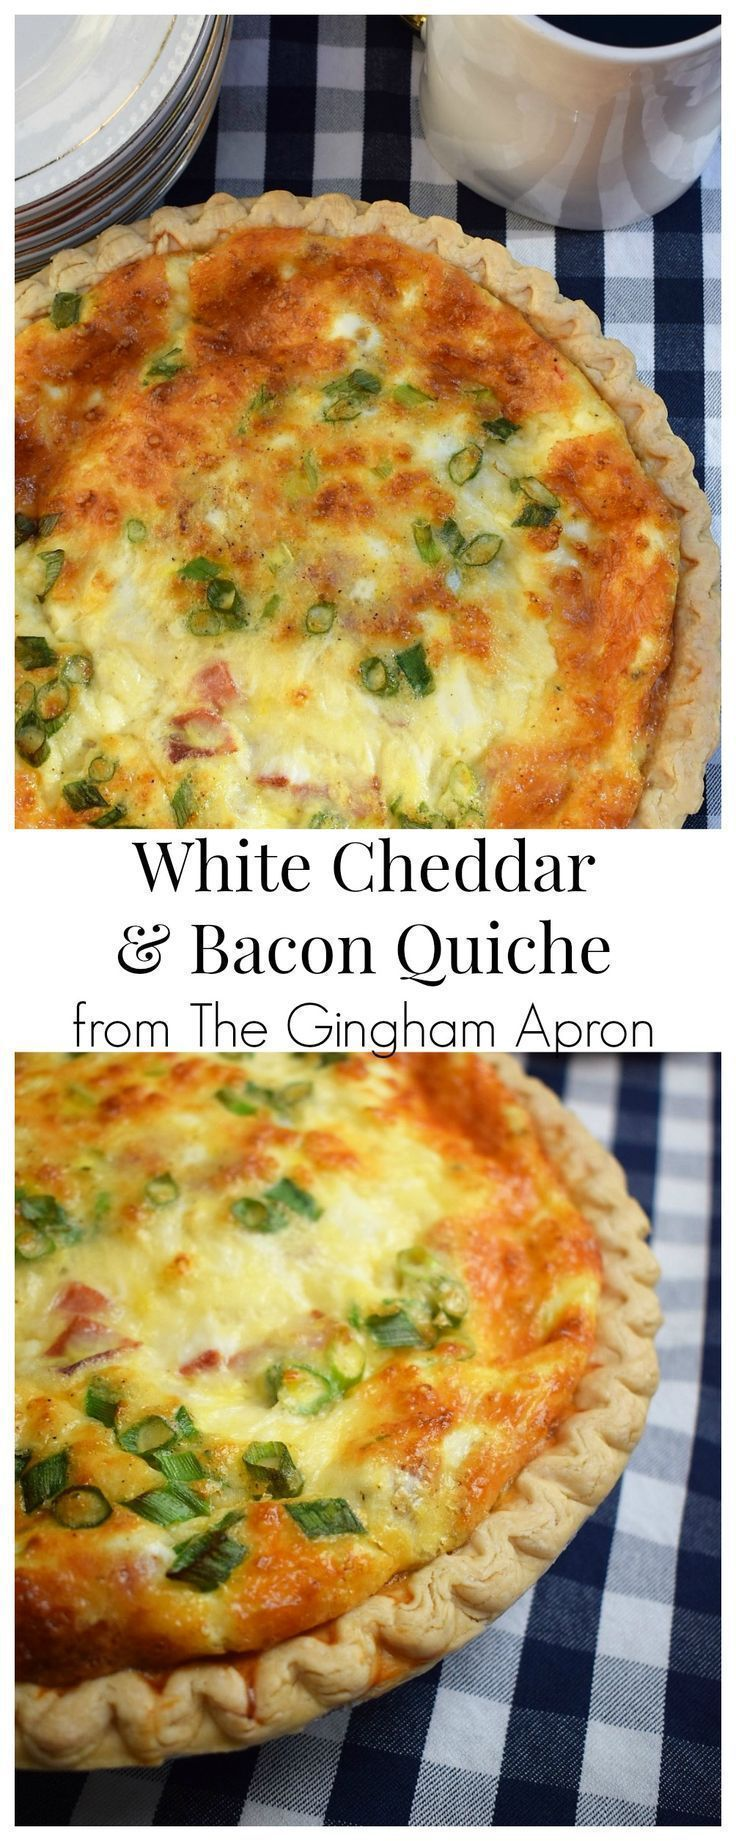 White Cheddar and Bacon Quiche | The Gingham Apron